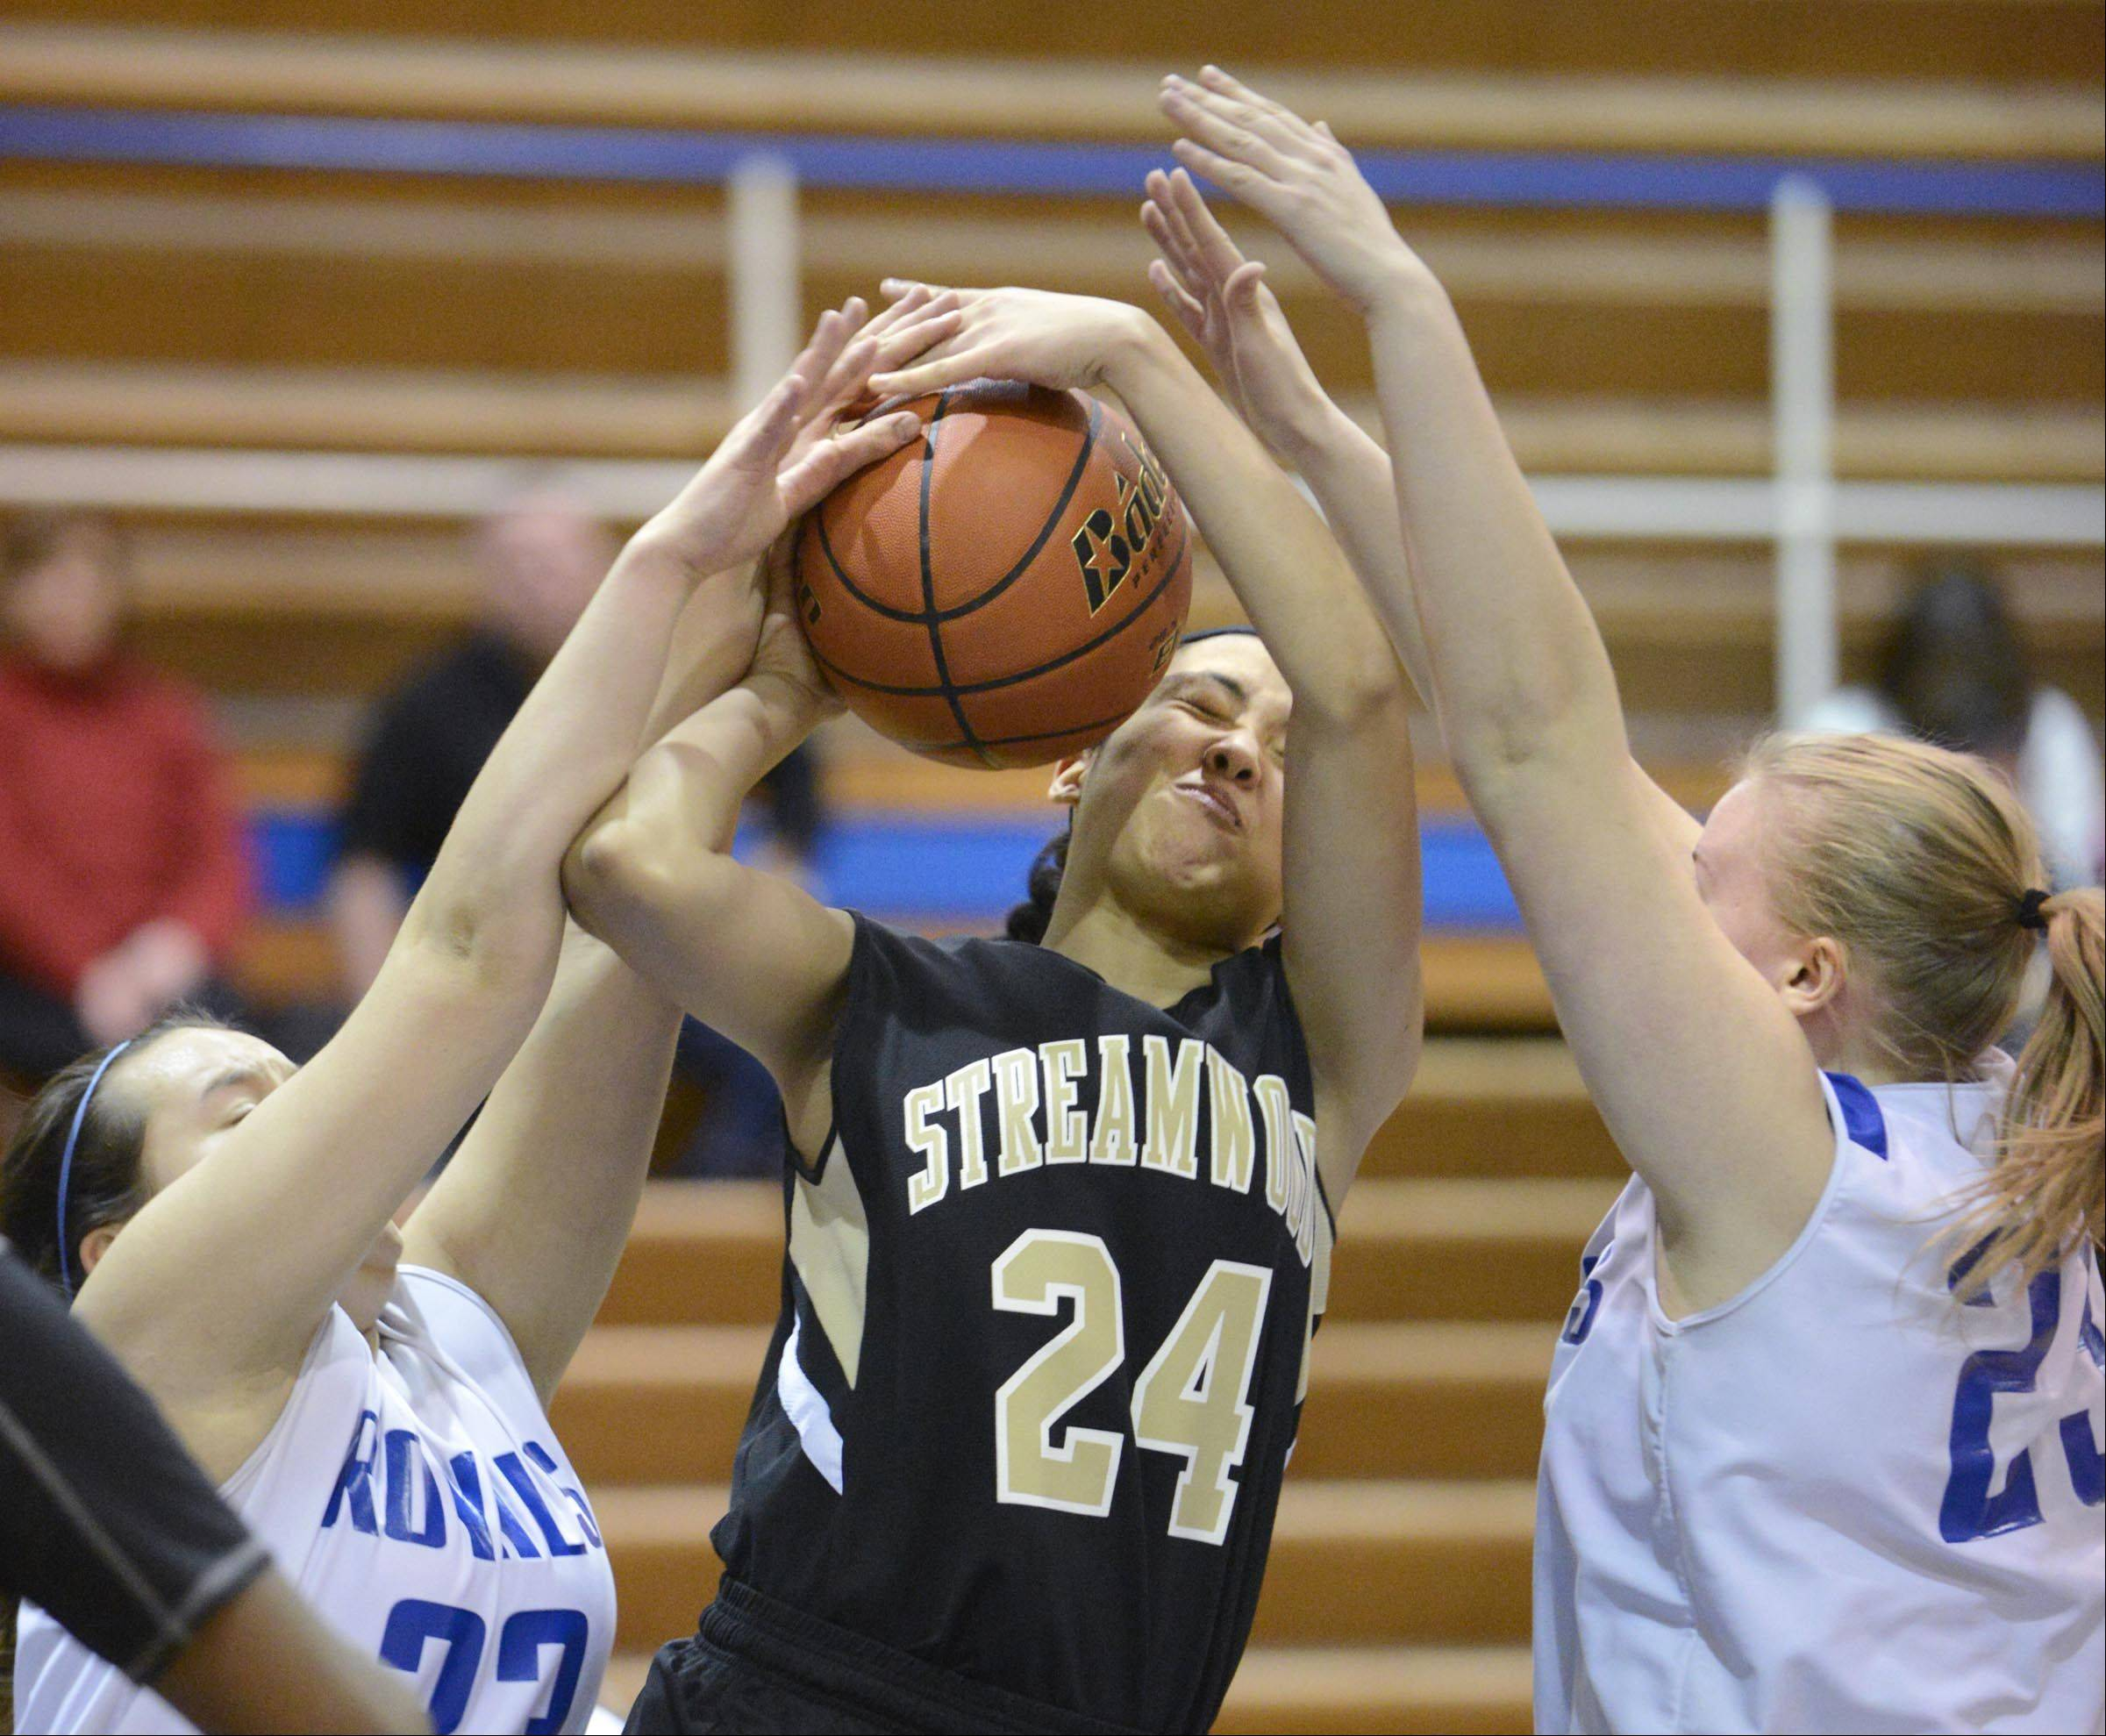 Streamwood's Kiana Jeremiah is blocked by Larkin's Rachel Martinez and Haley Casebeer, right, Thursday in Elgin.